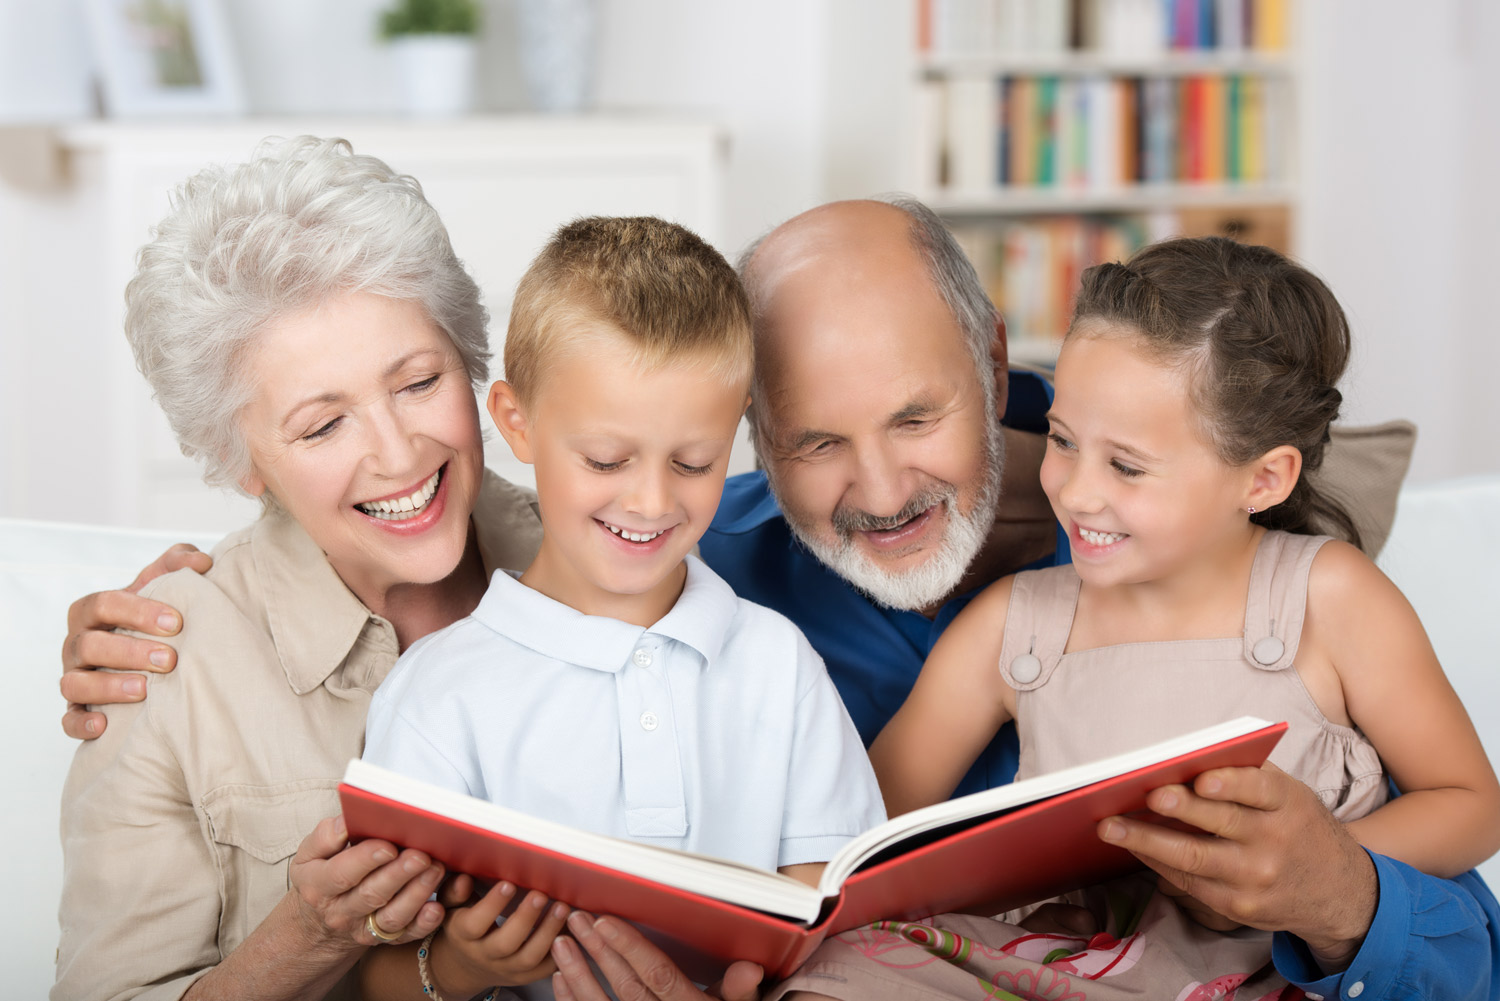 Being able to hear and remember information is important to enjoying memories with grandchildren.